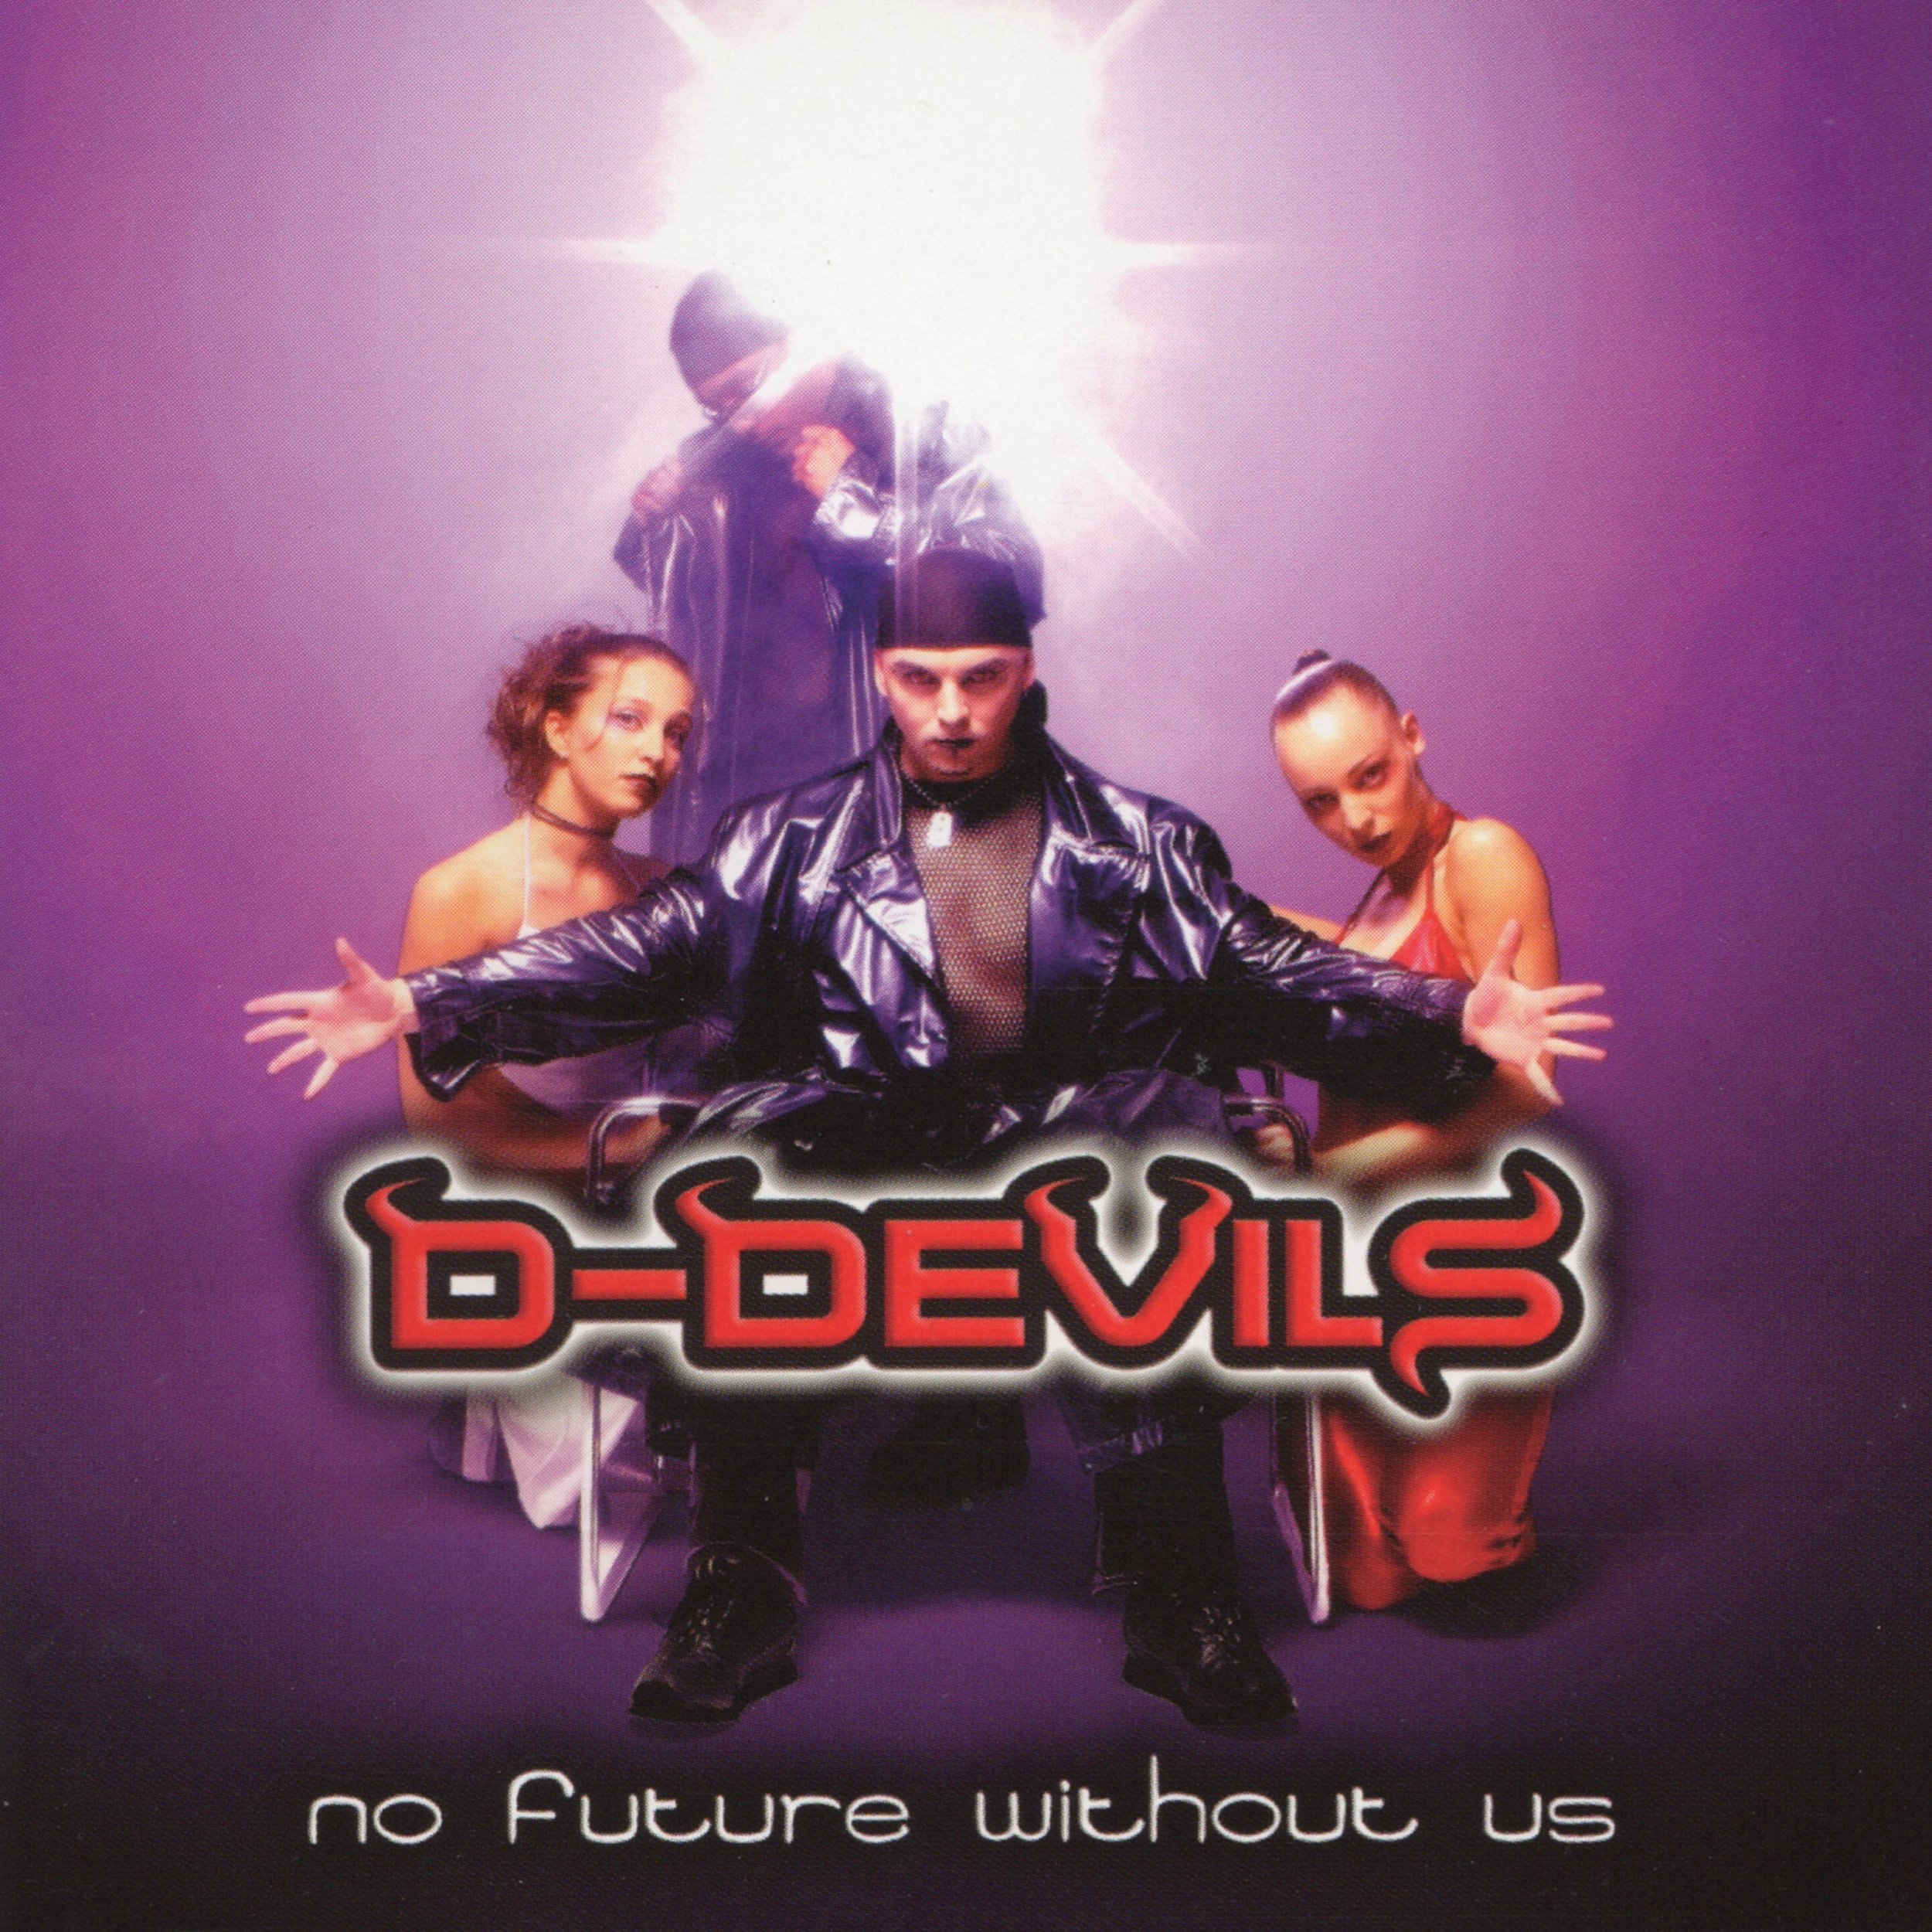 D-Devils - No Future Without Us (Elena).jpg